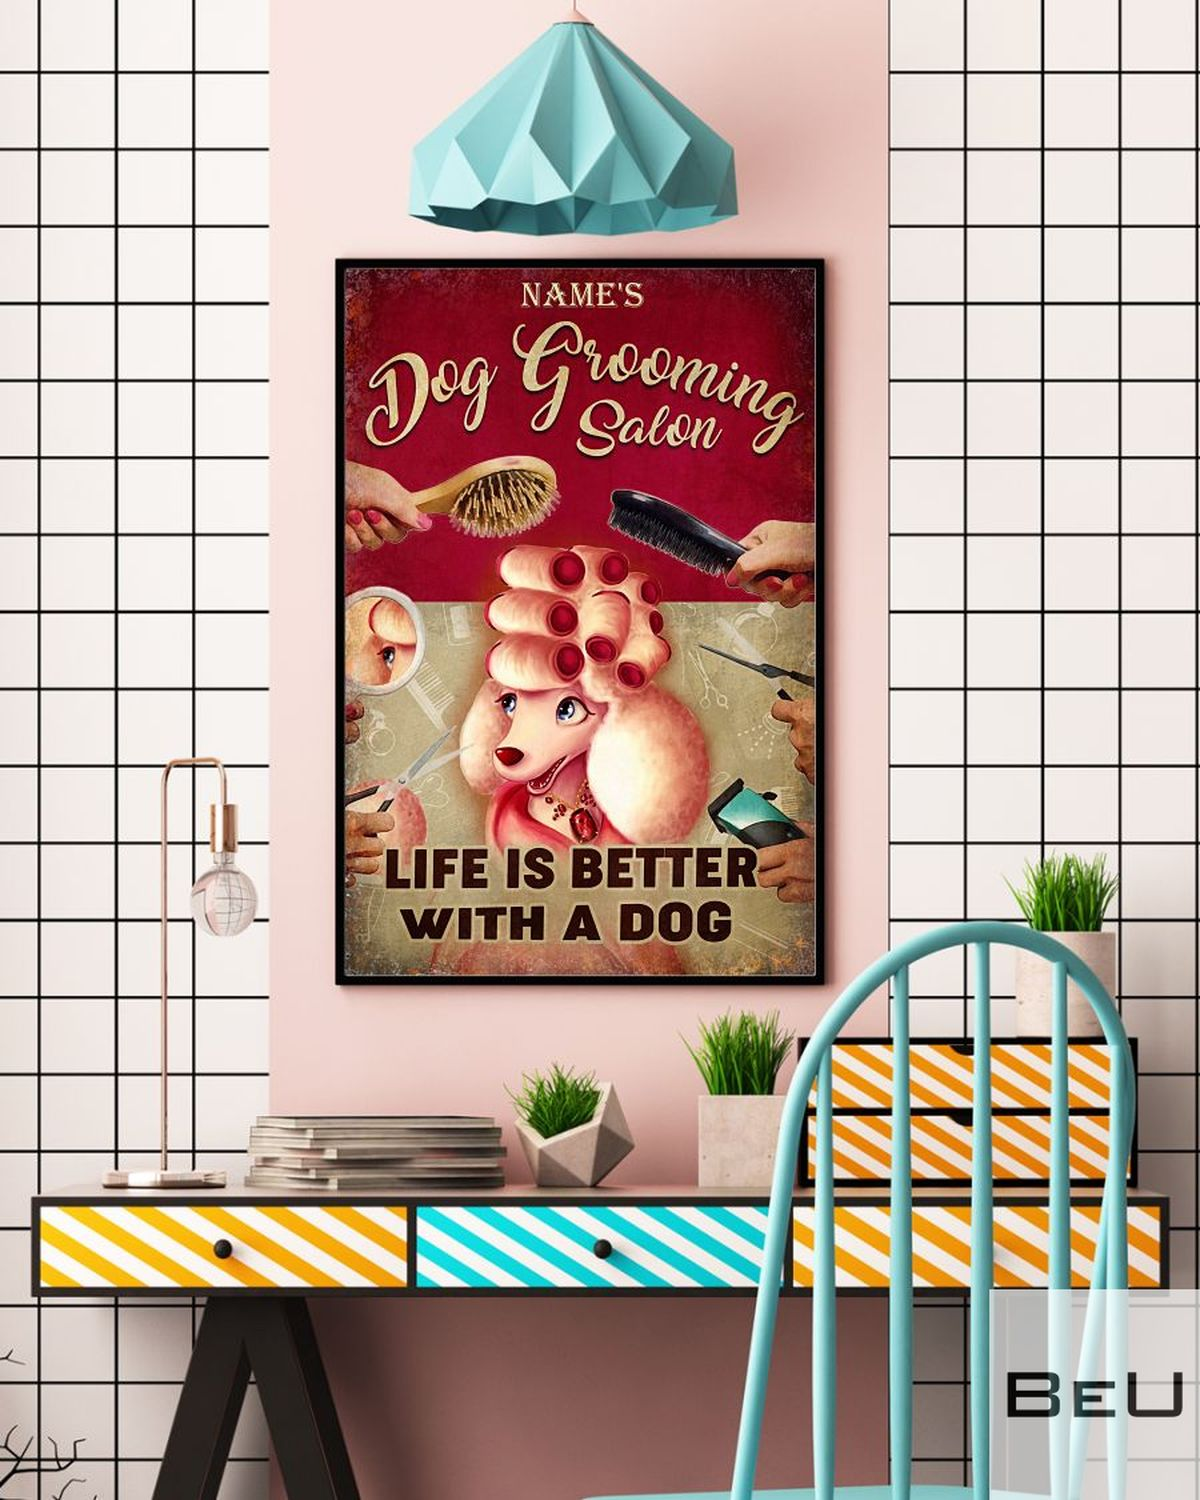 Personalized Dog Gooming Salon Life Is Better With A Dog Posterc